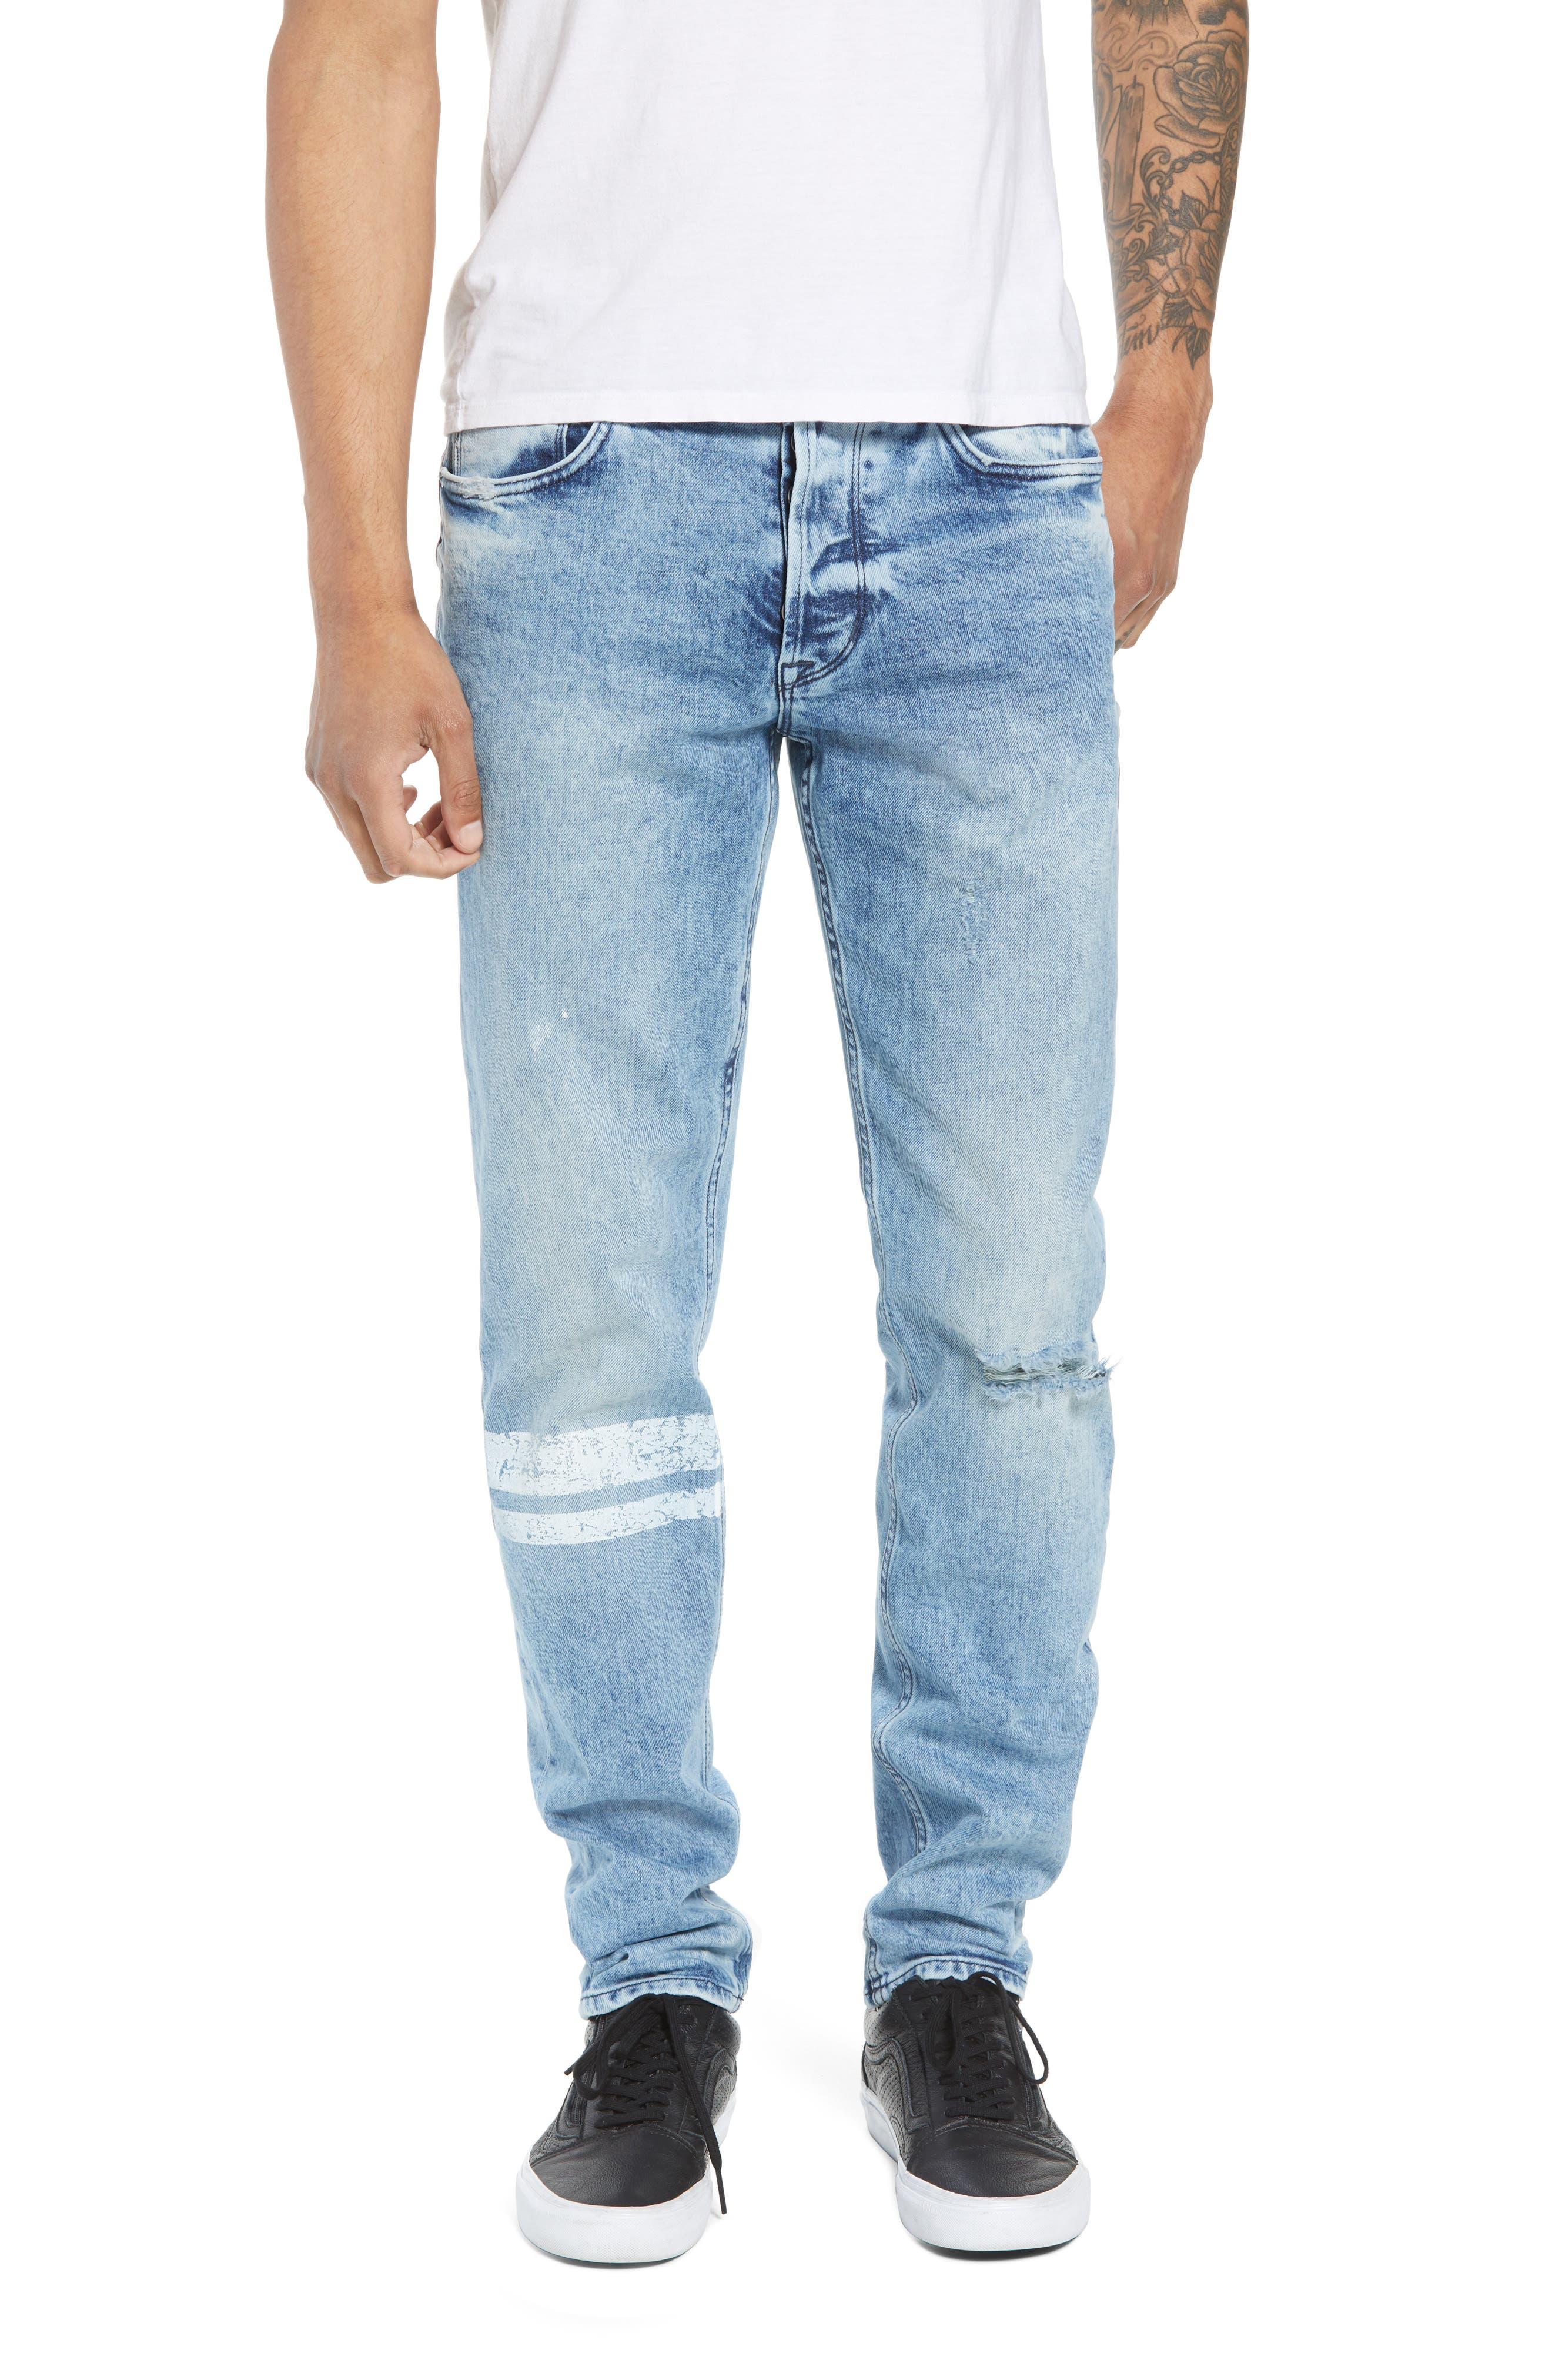 Sartor Slouchy Skinny Fit Jeans,                             Main thumbnail 1, color,                             Wild Nothing